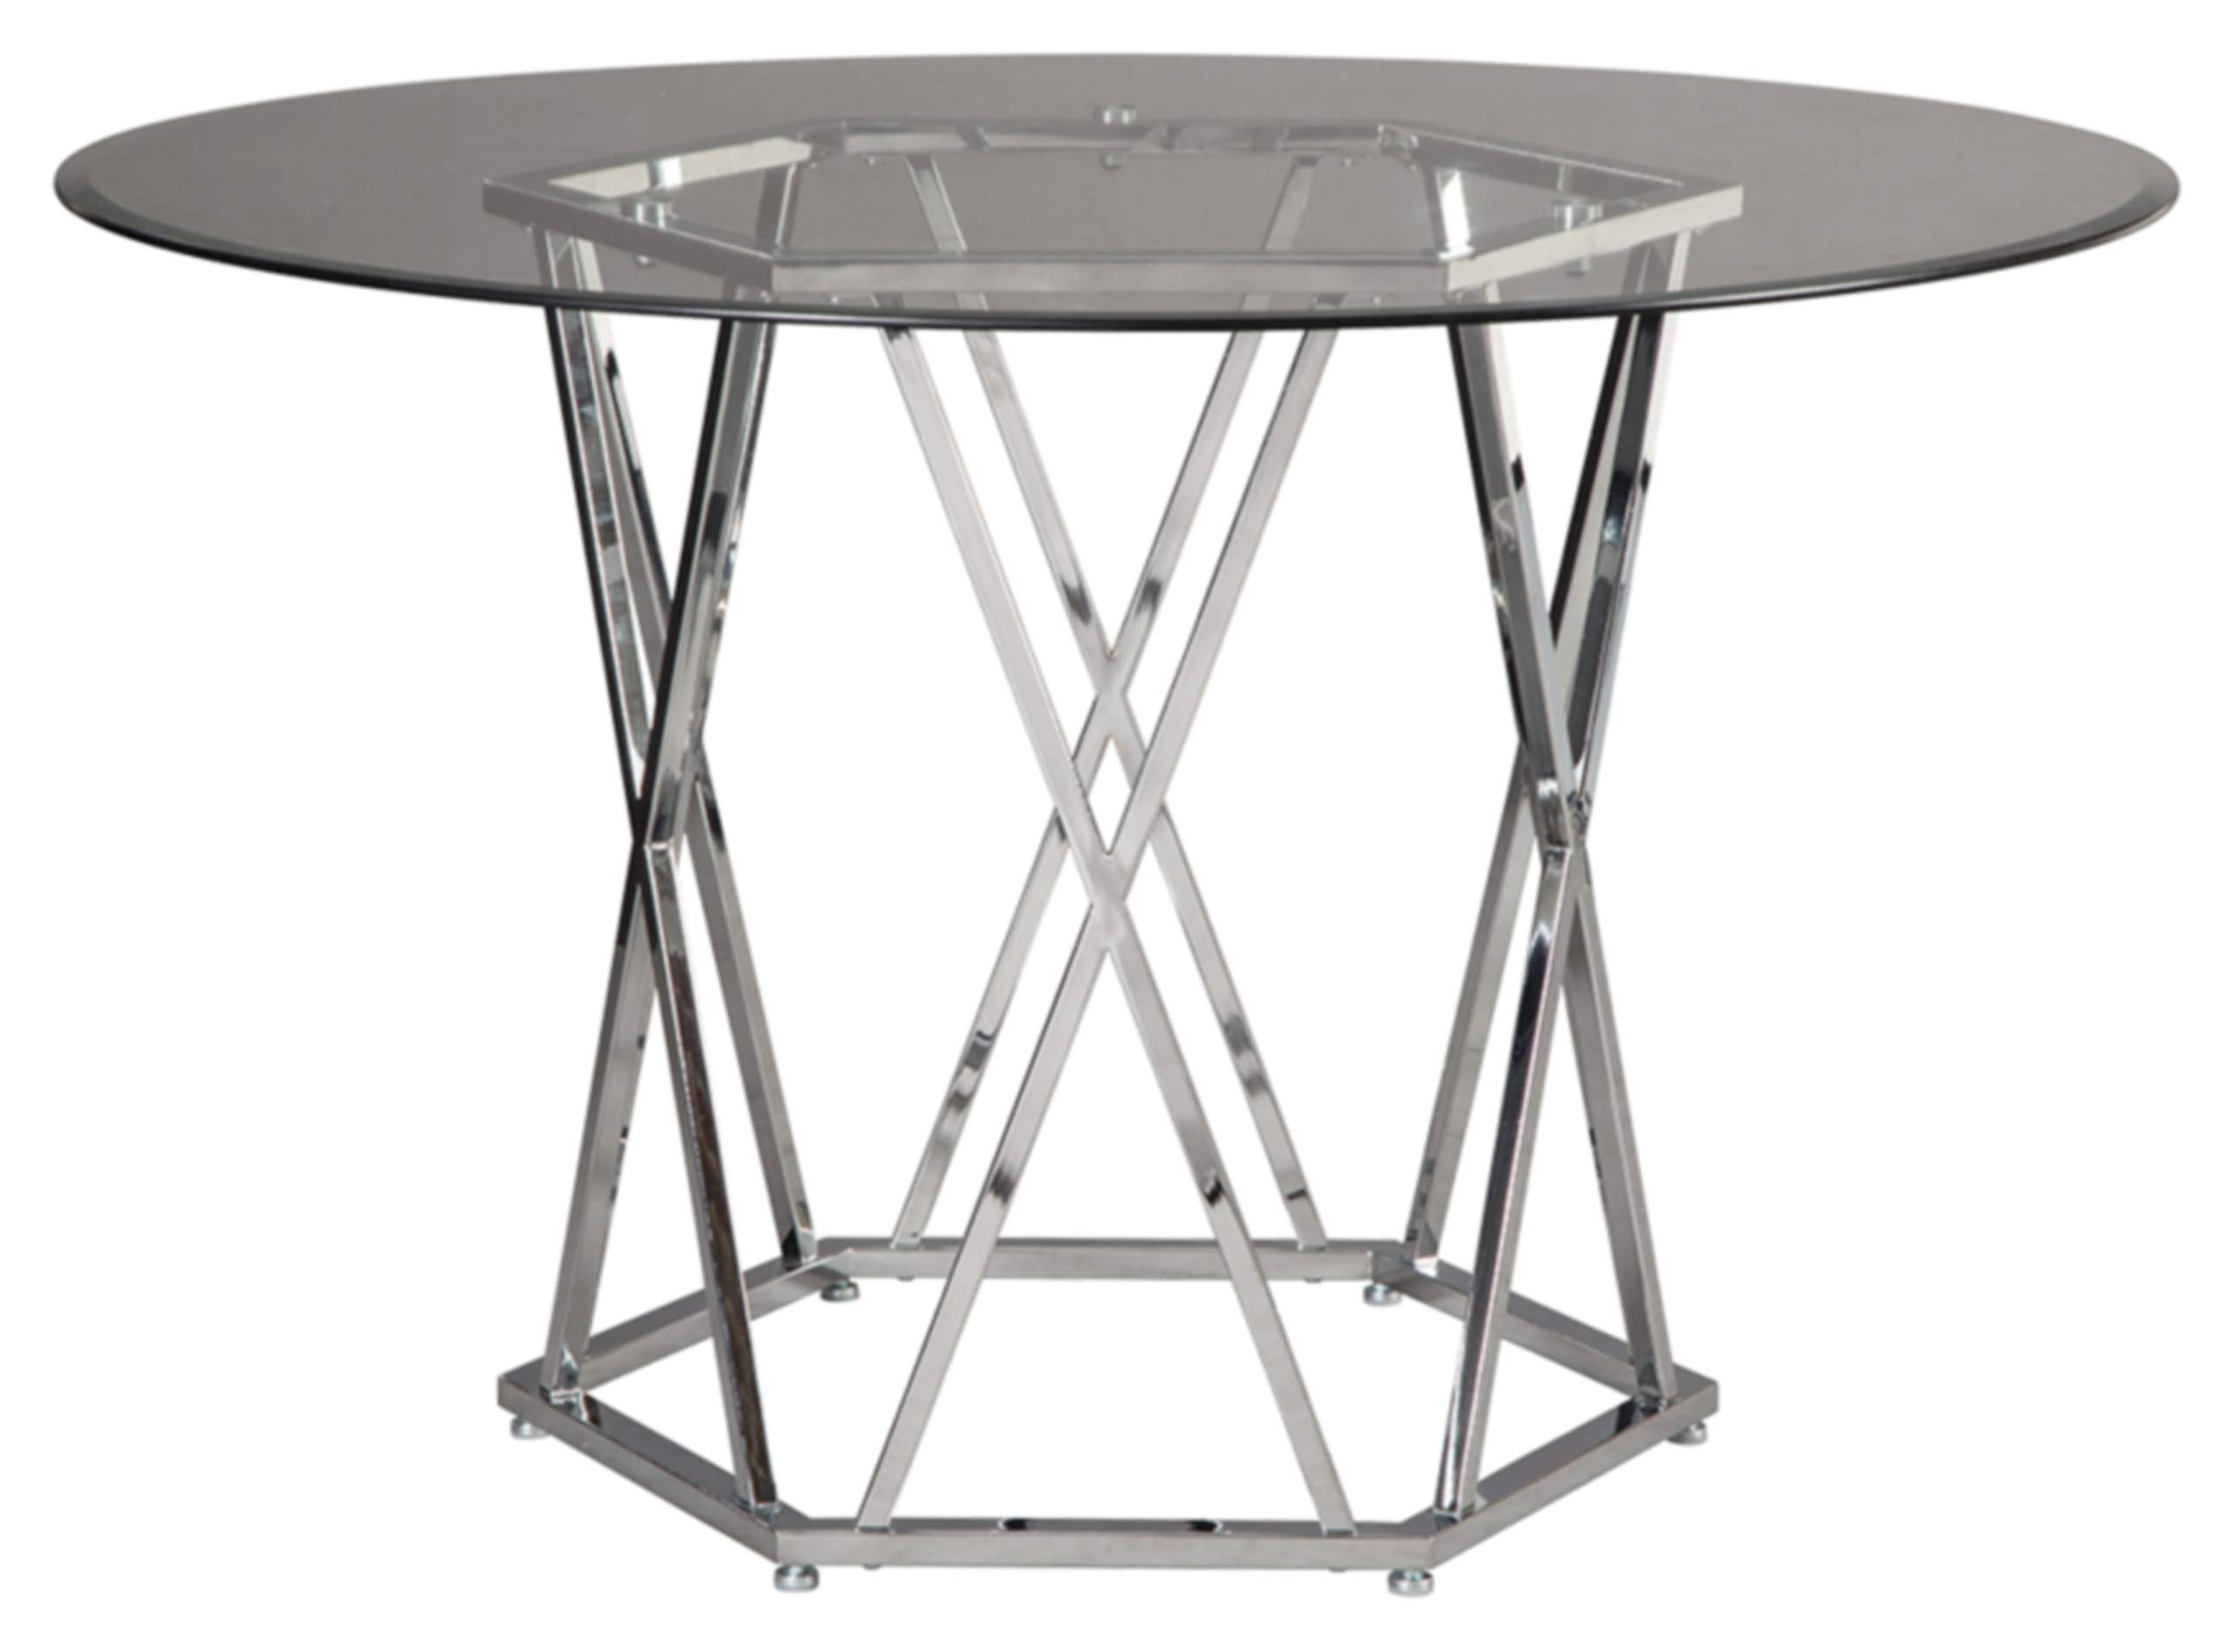 Signature Design by Ashley D275-15 Madanere Dining Table, Chrome